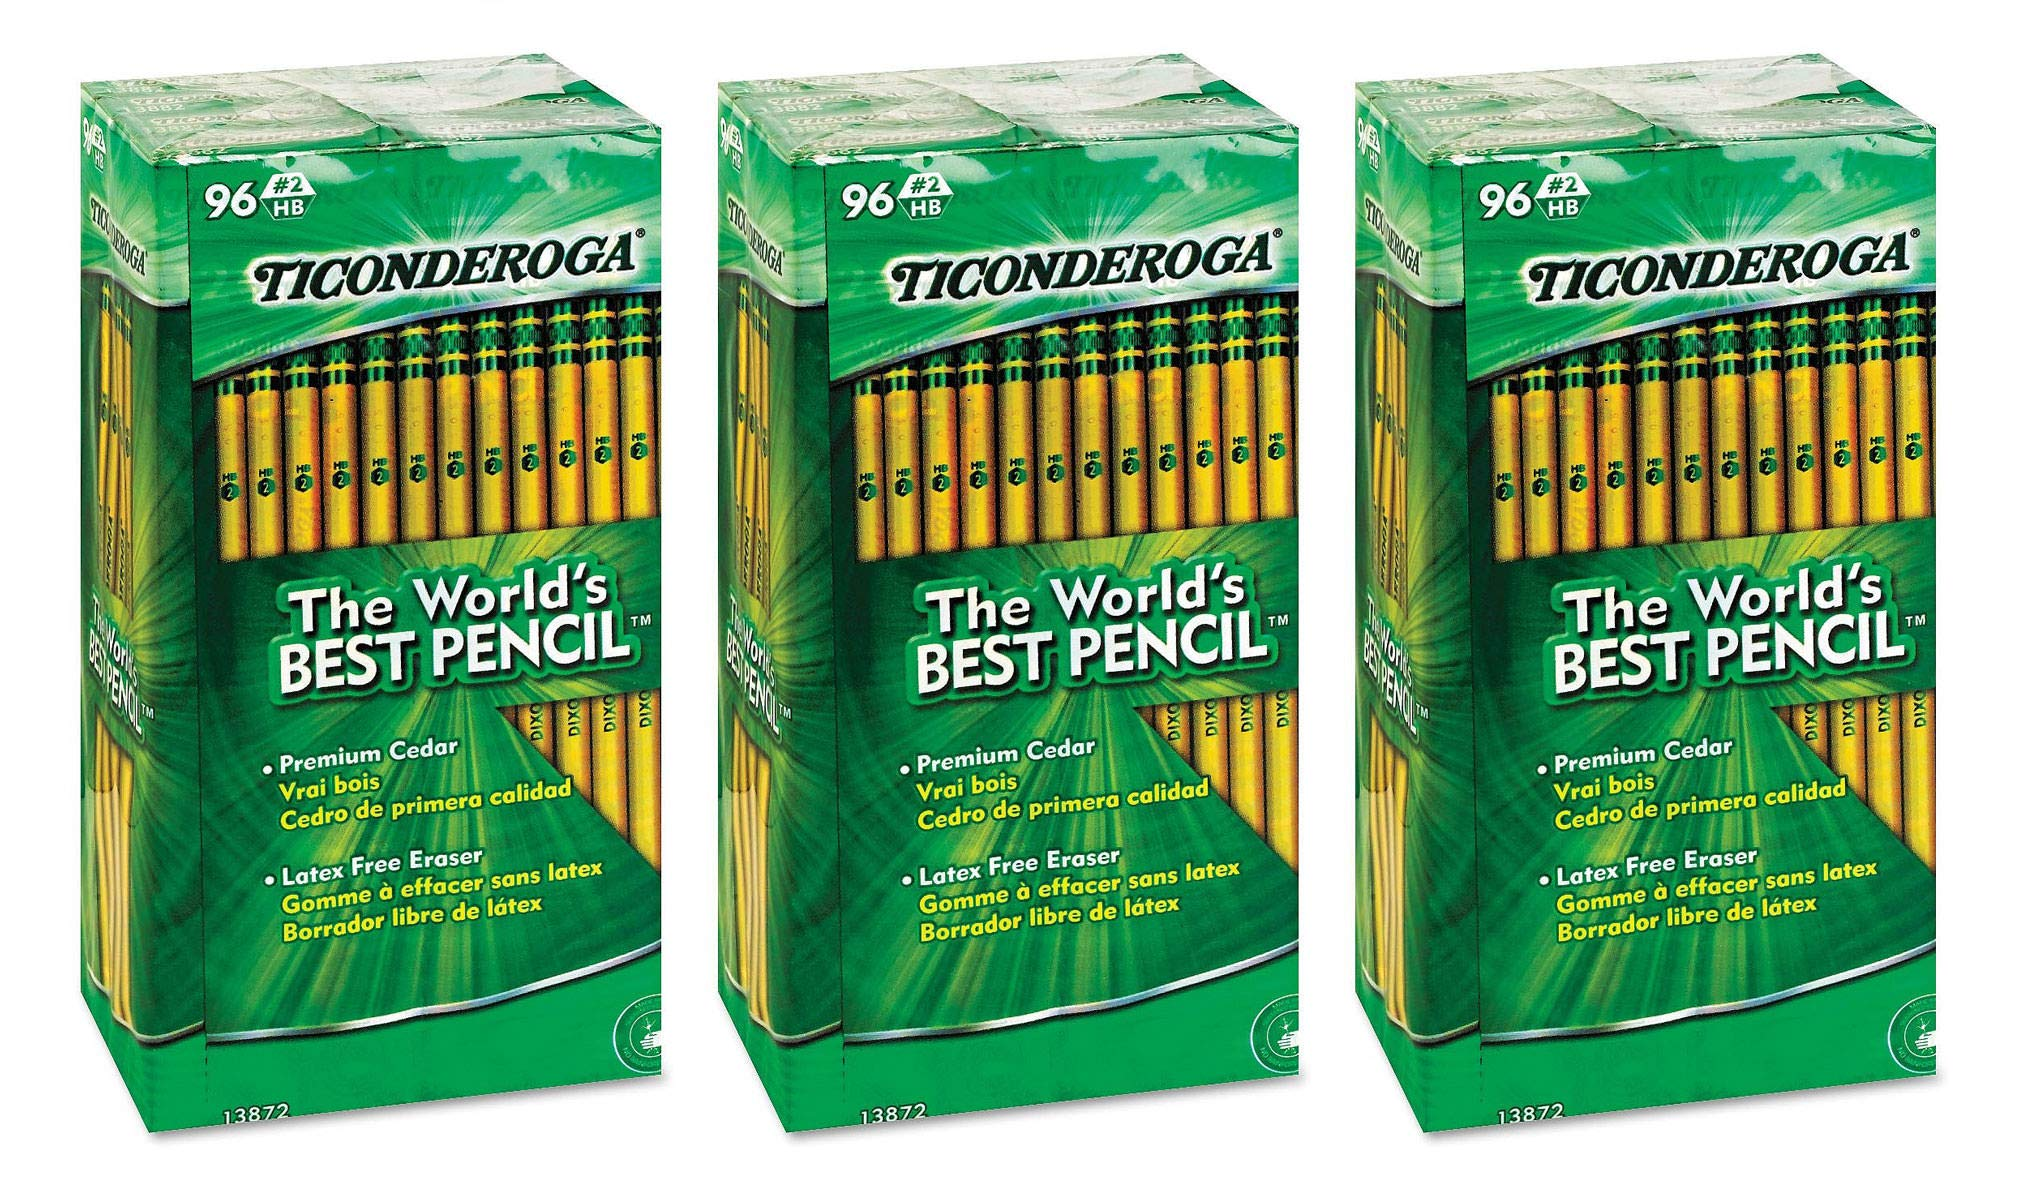 Ticonderoga dtyu Woodcase Pencil, HB #2, Yellow Barrel, 96/Pack 3 Pack by Ticonderoga